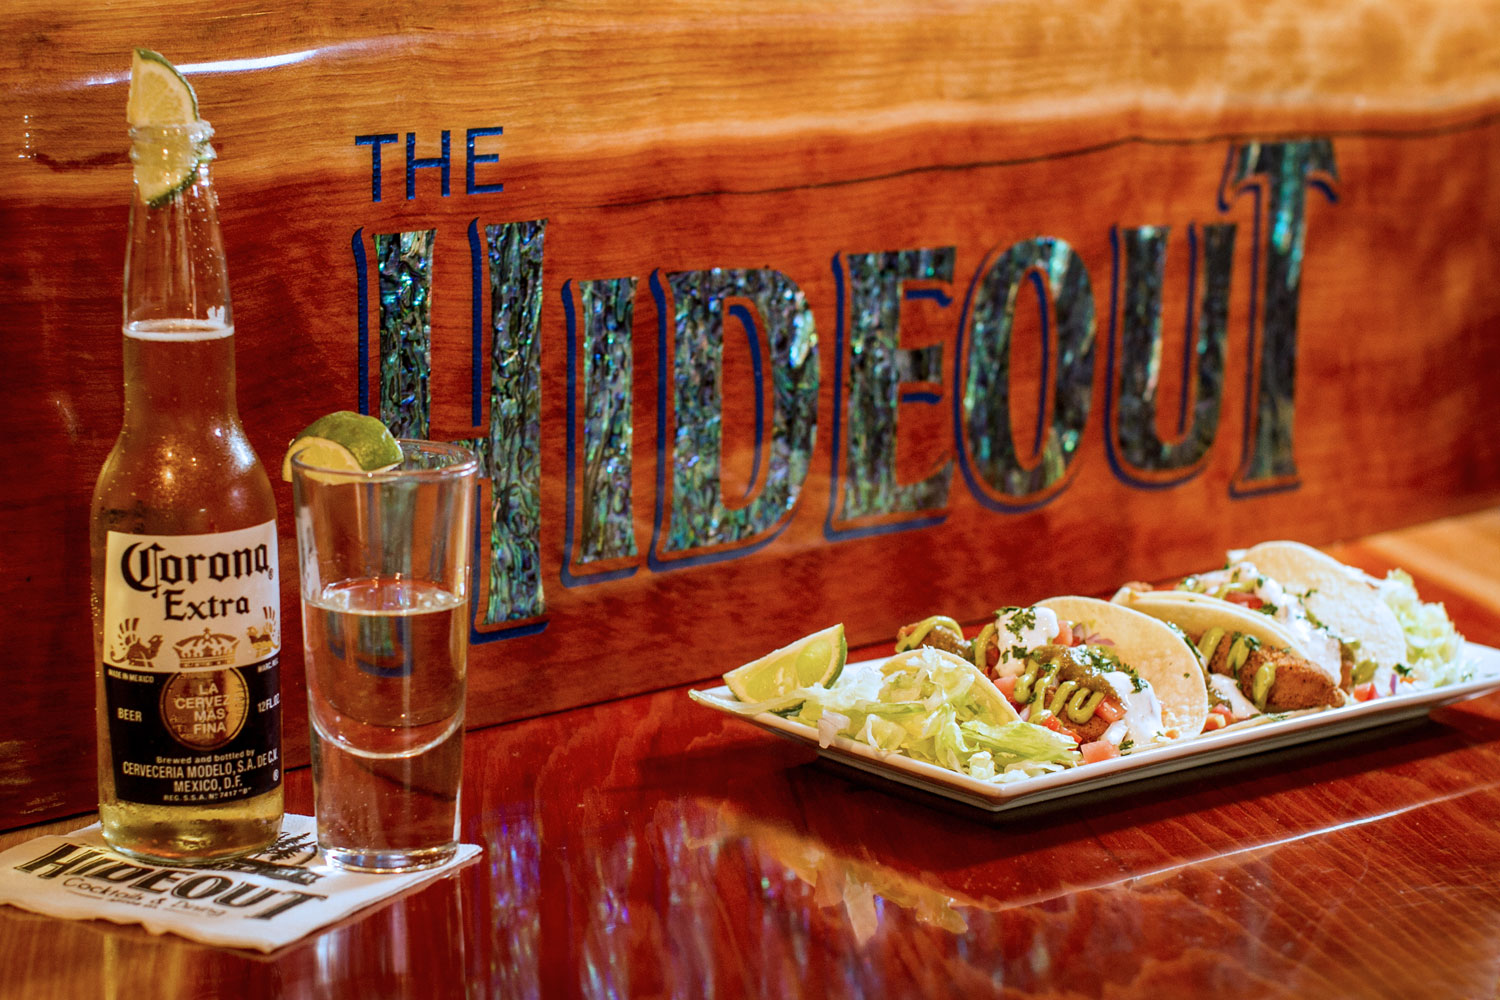 The Hideout, Cocktails & Dining